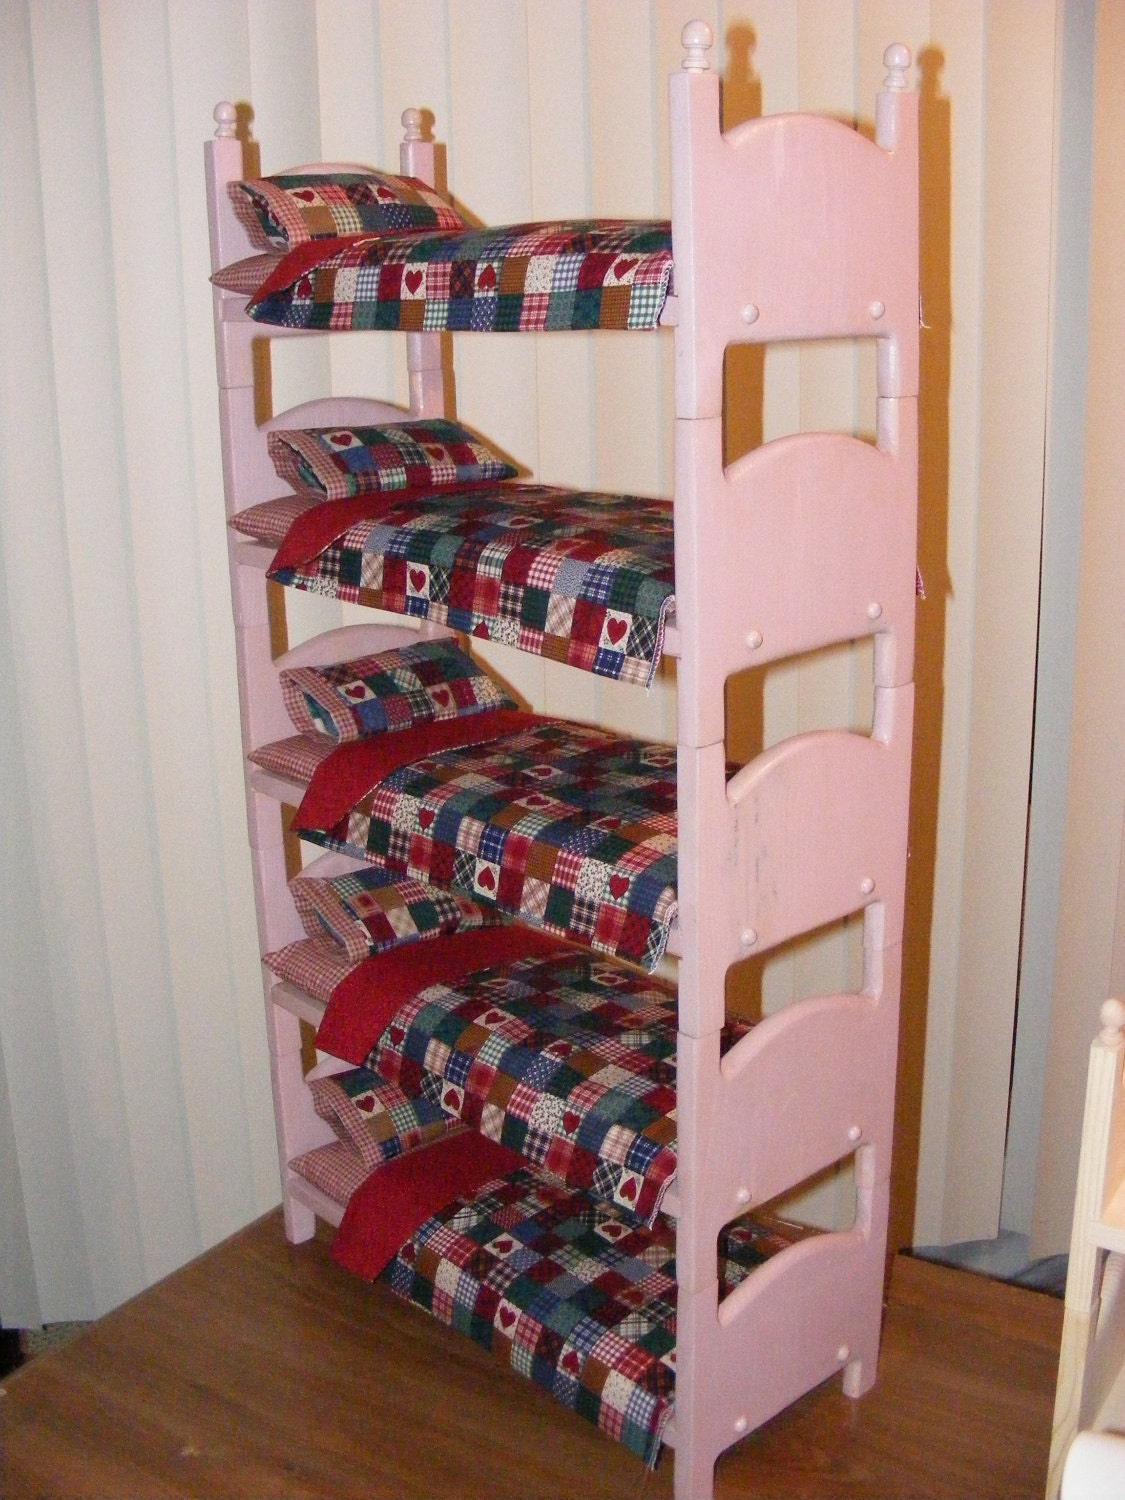 Stackable Quintuple Heart Doll Bunk Bed Bedding Set. American Girl Doll  Furniture - The Crafters - Doll Bunk Beds For 18 Inch Dolls Show Home Design